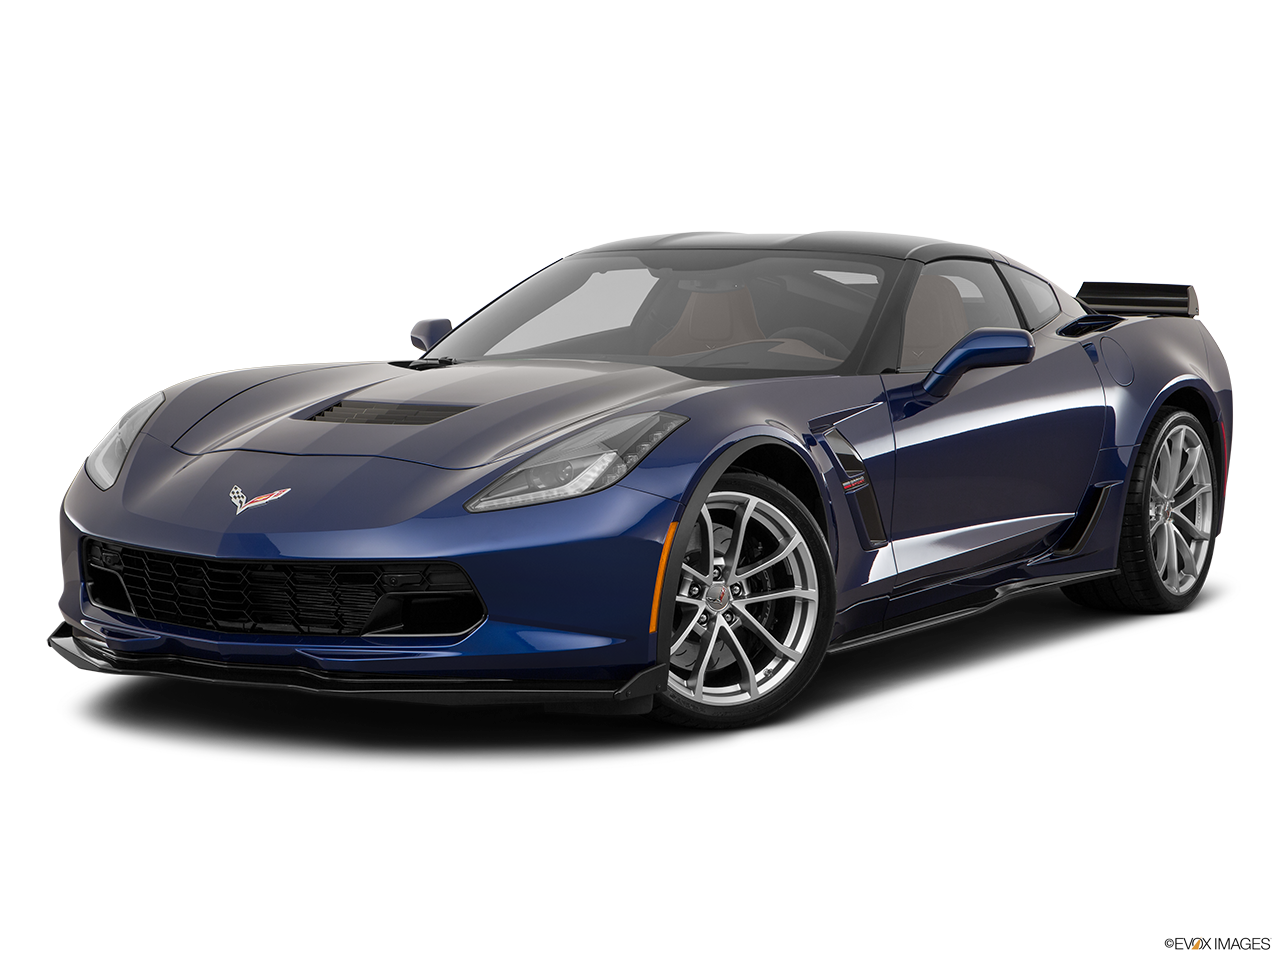 2017 chevy corvette naperville il chevrolet of naperville. Black Bedroom Furniture Sets. Home Design Ideas